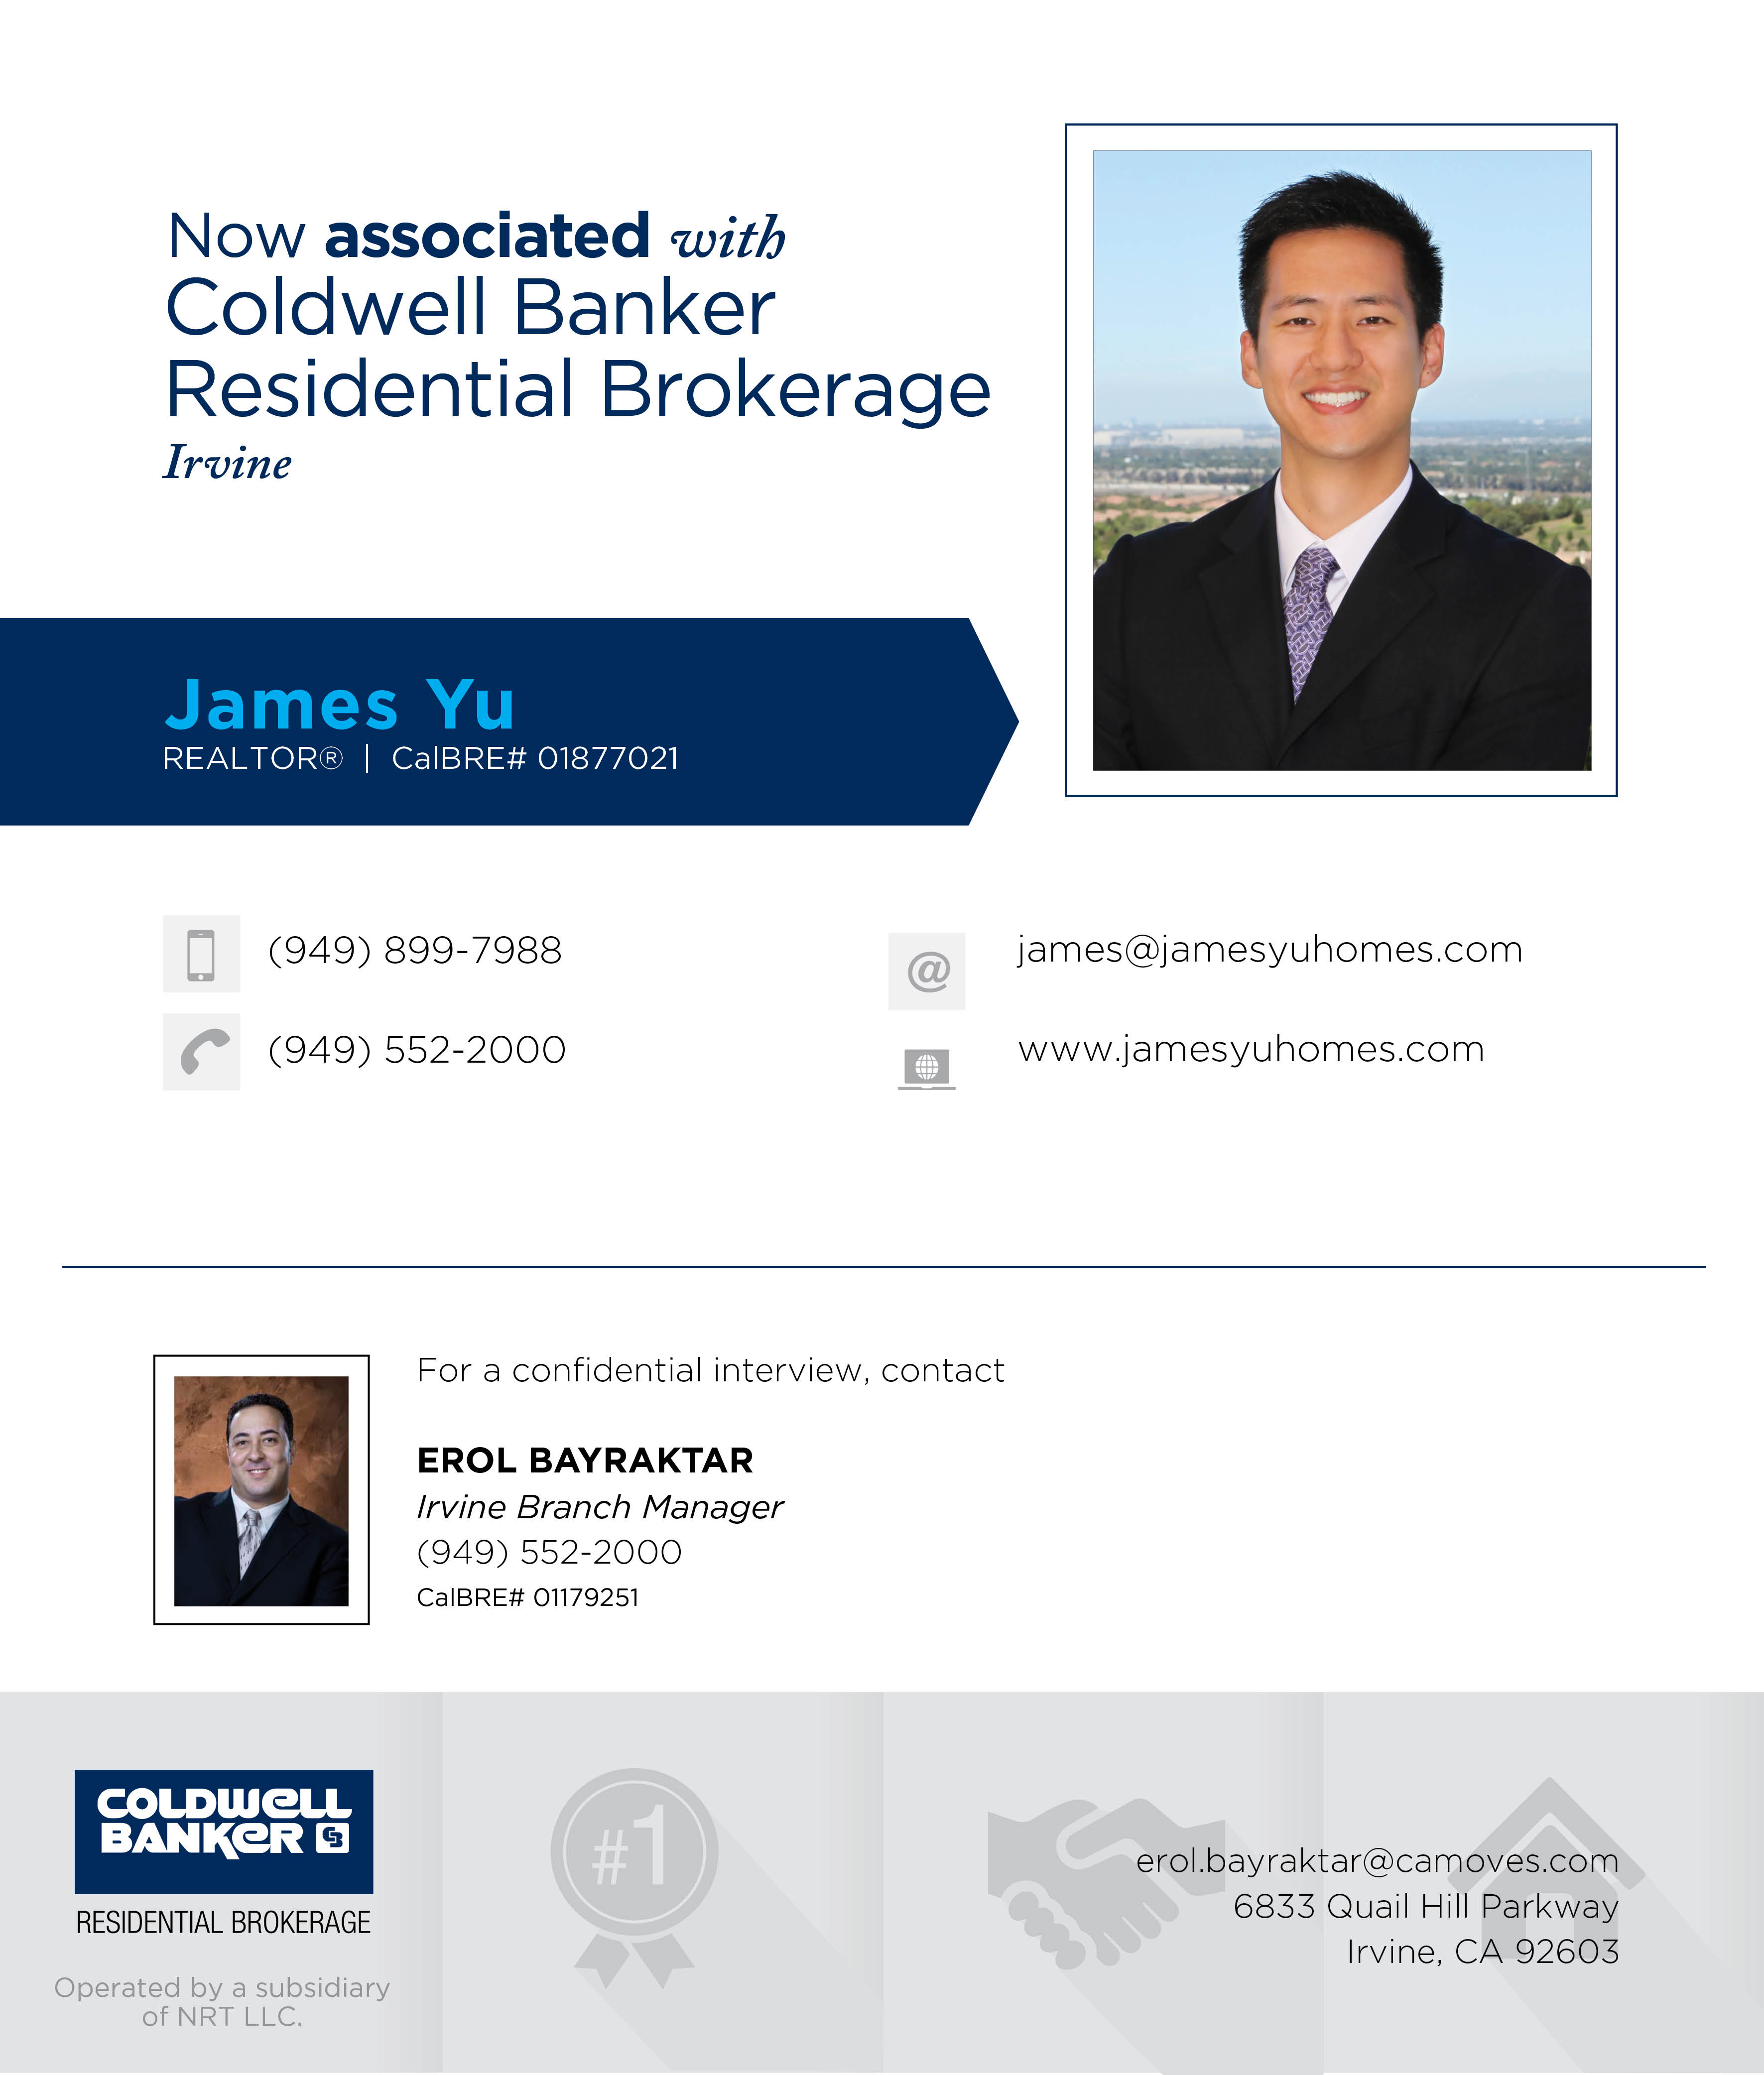 coldwell banker irvine is proud to announce james yu has joined our